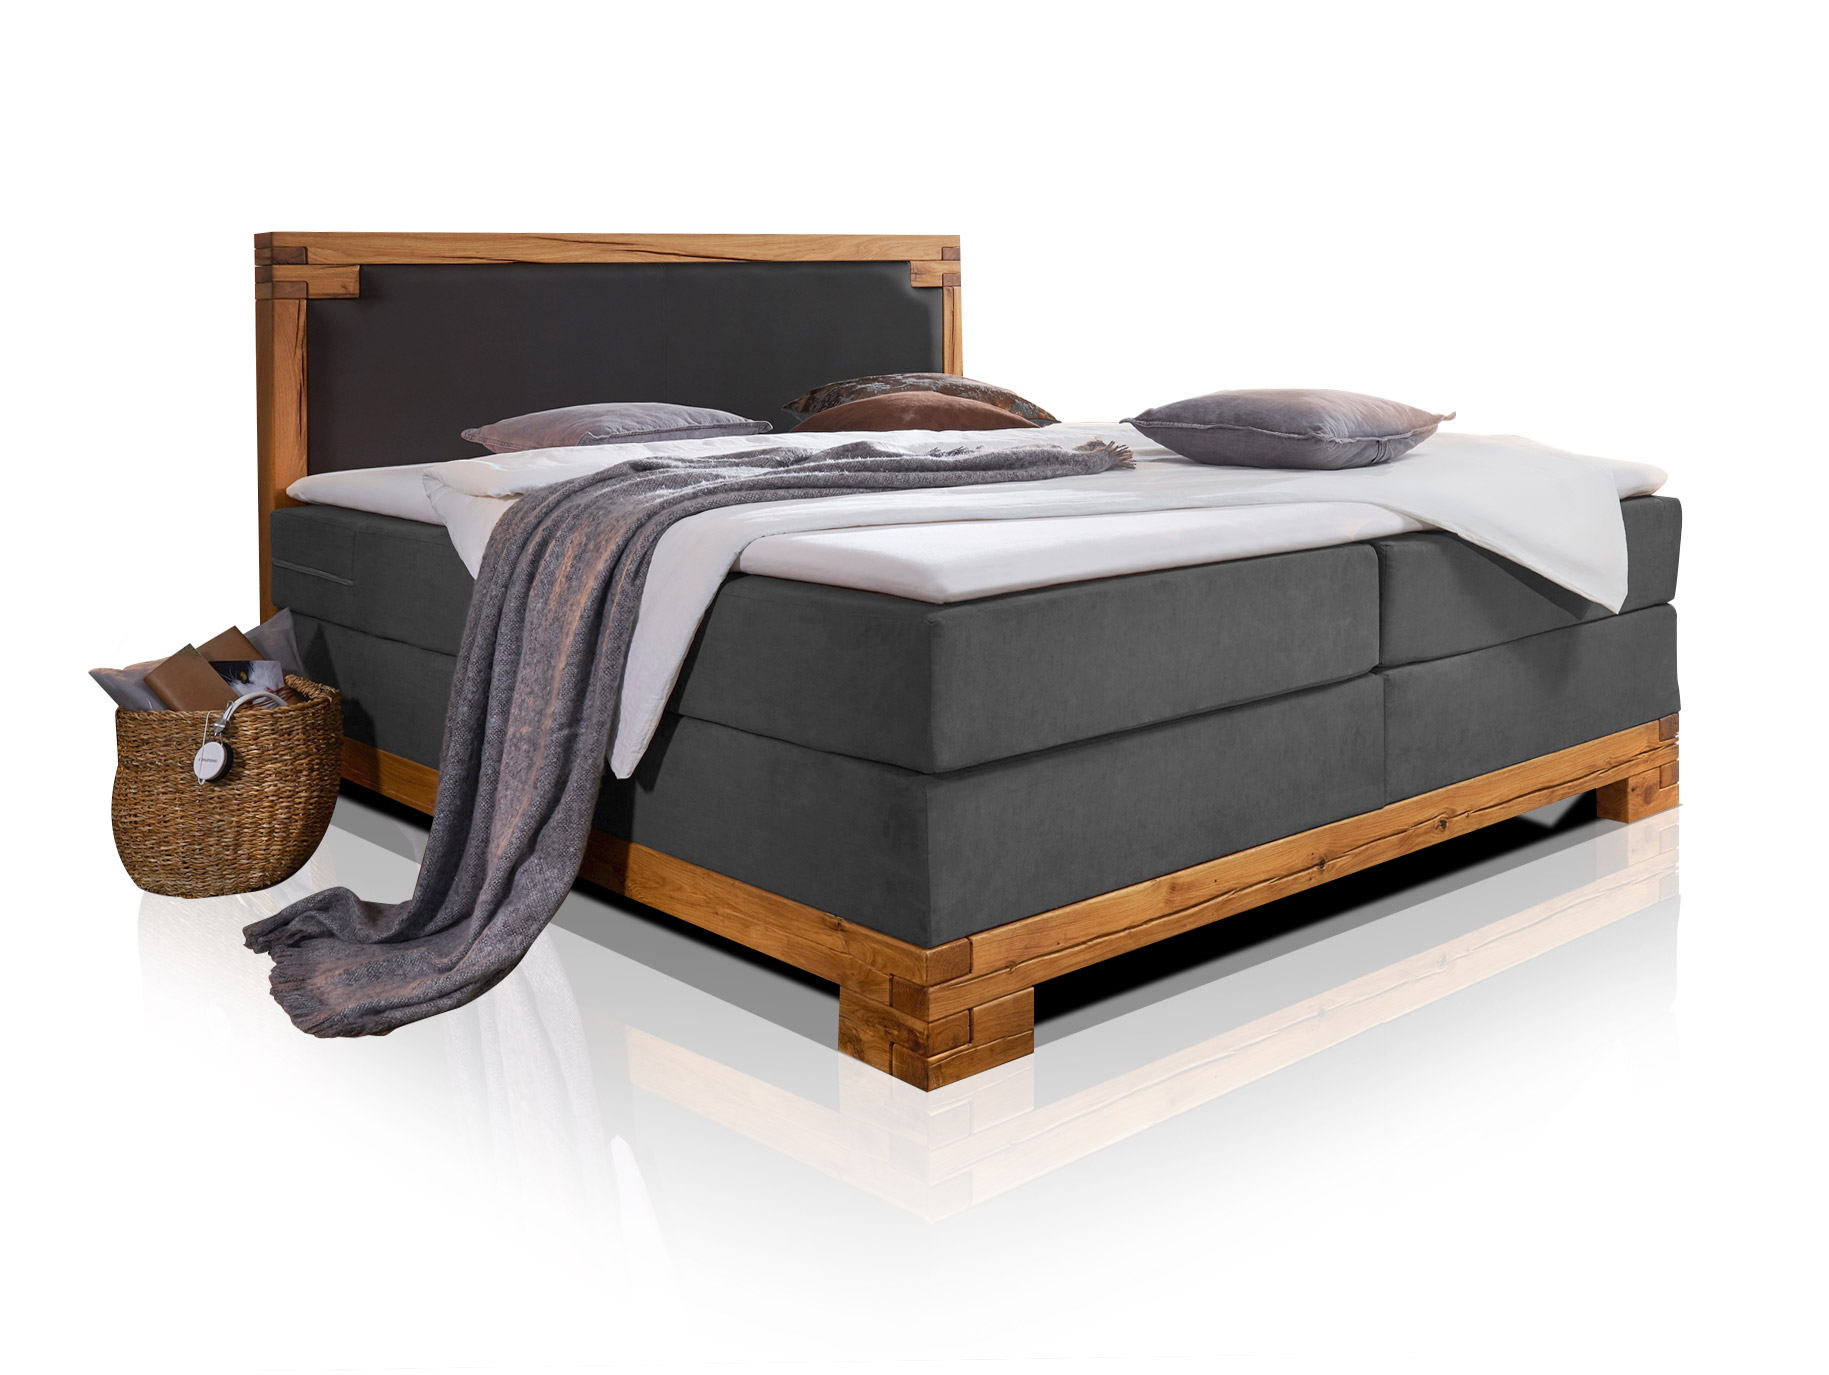 boxspringbett massivholzrahmen bellamie boxspring bett doppelbett 160 180 200 cm ebay. Black Bedroom Furniture Sets. Home Design Ideas